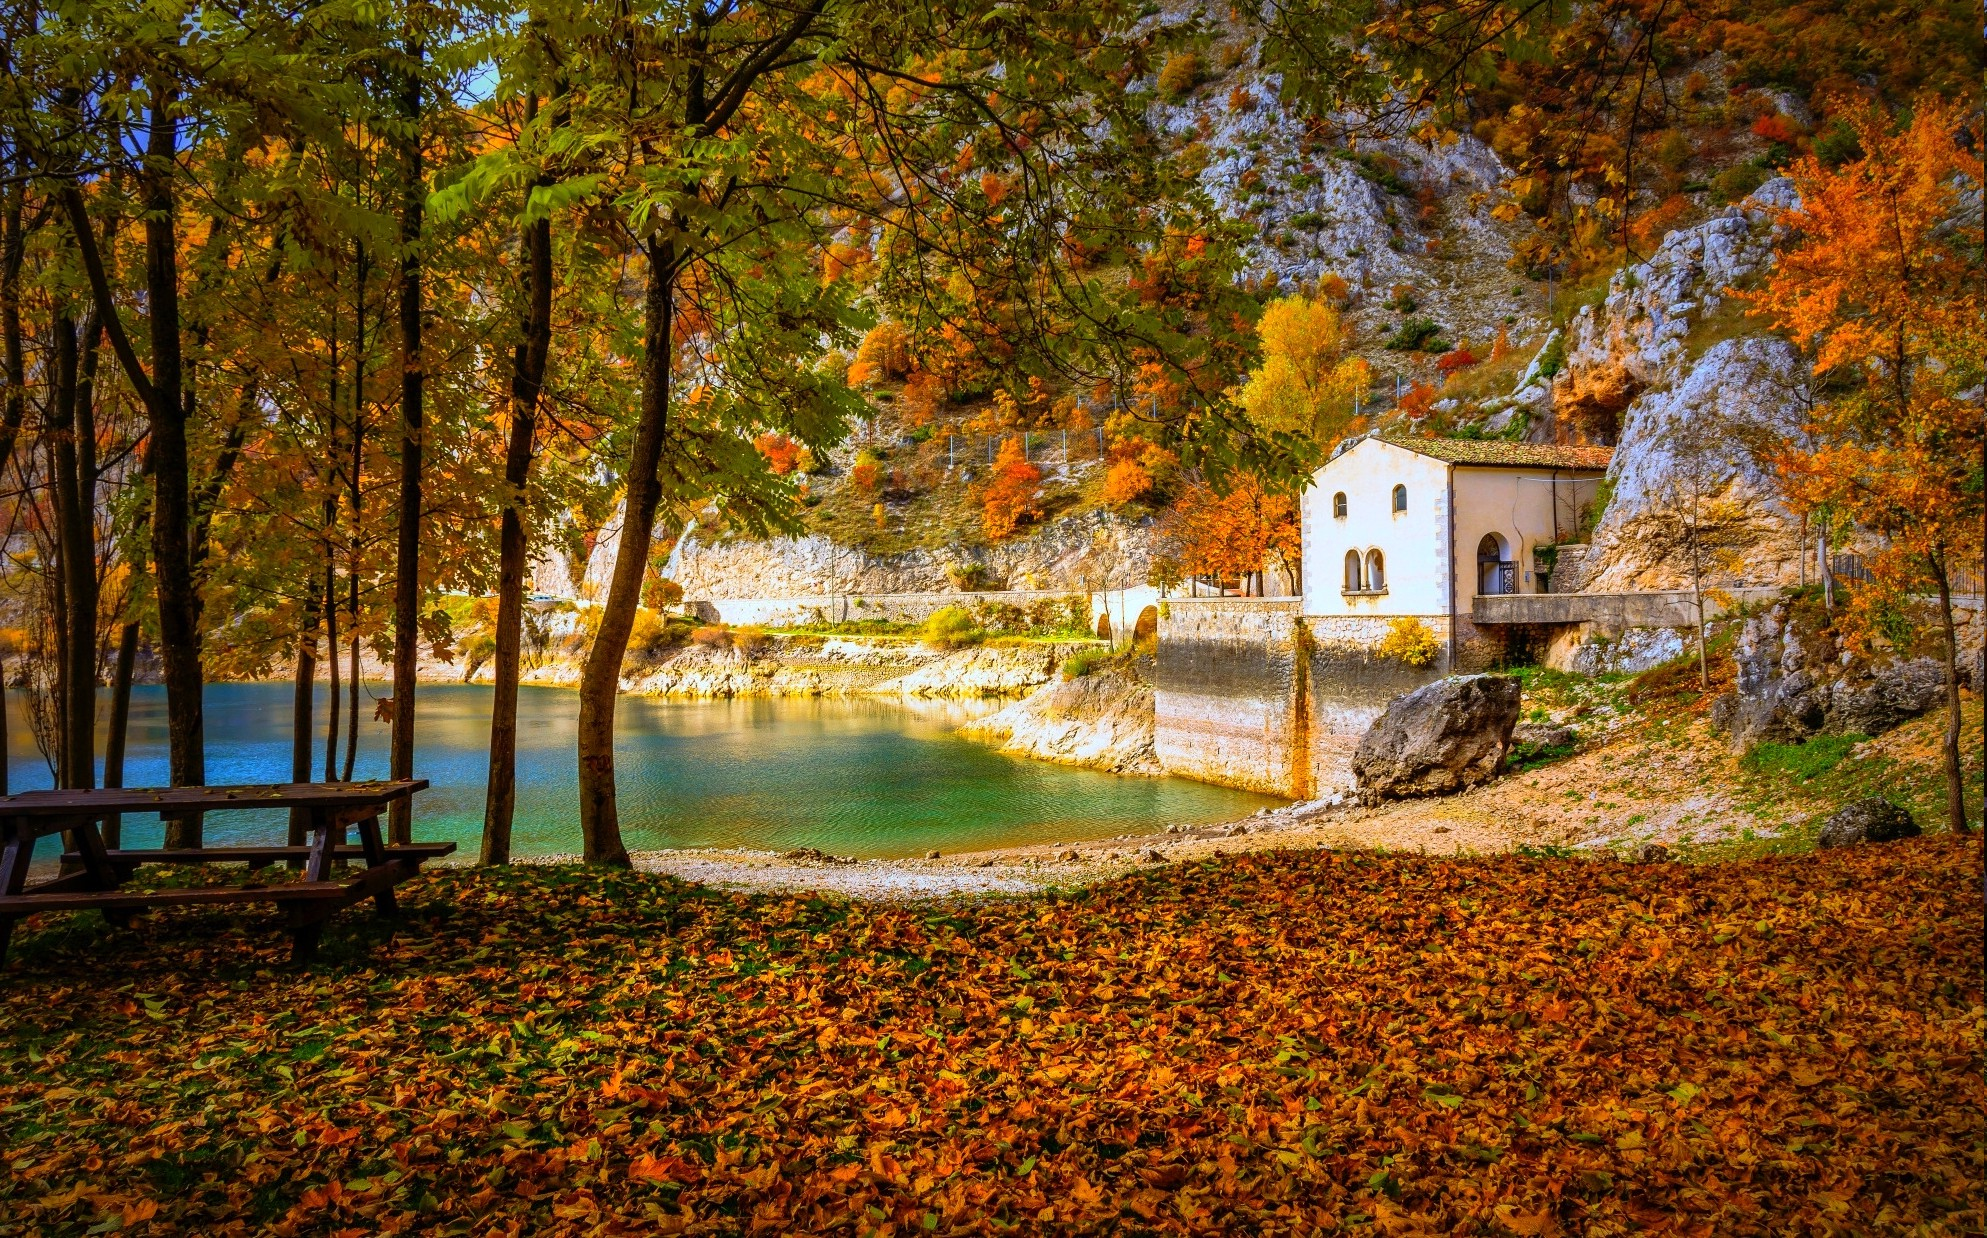 cottage lake fall camping italy trees hill yellow orange green blue nature landscape wallpapers hd desktop and mobile backgrounds